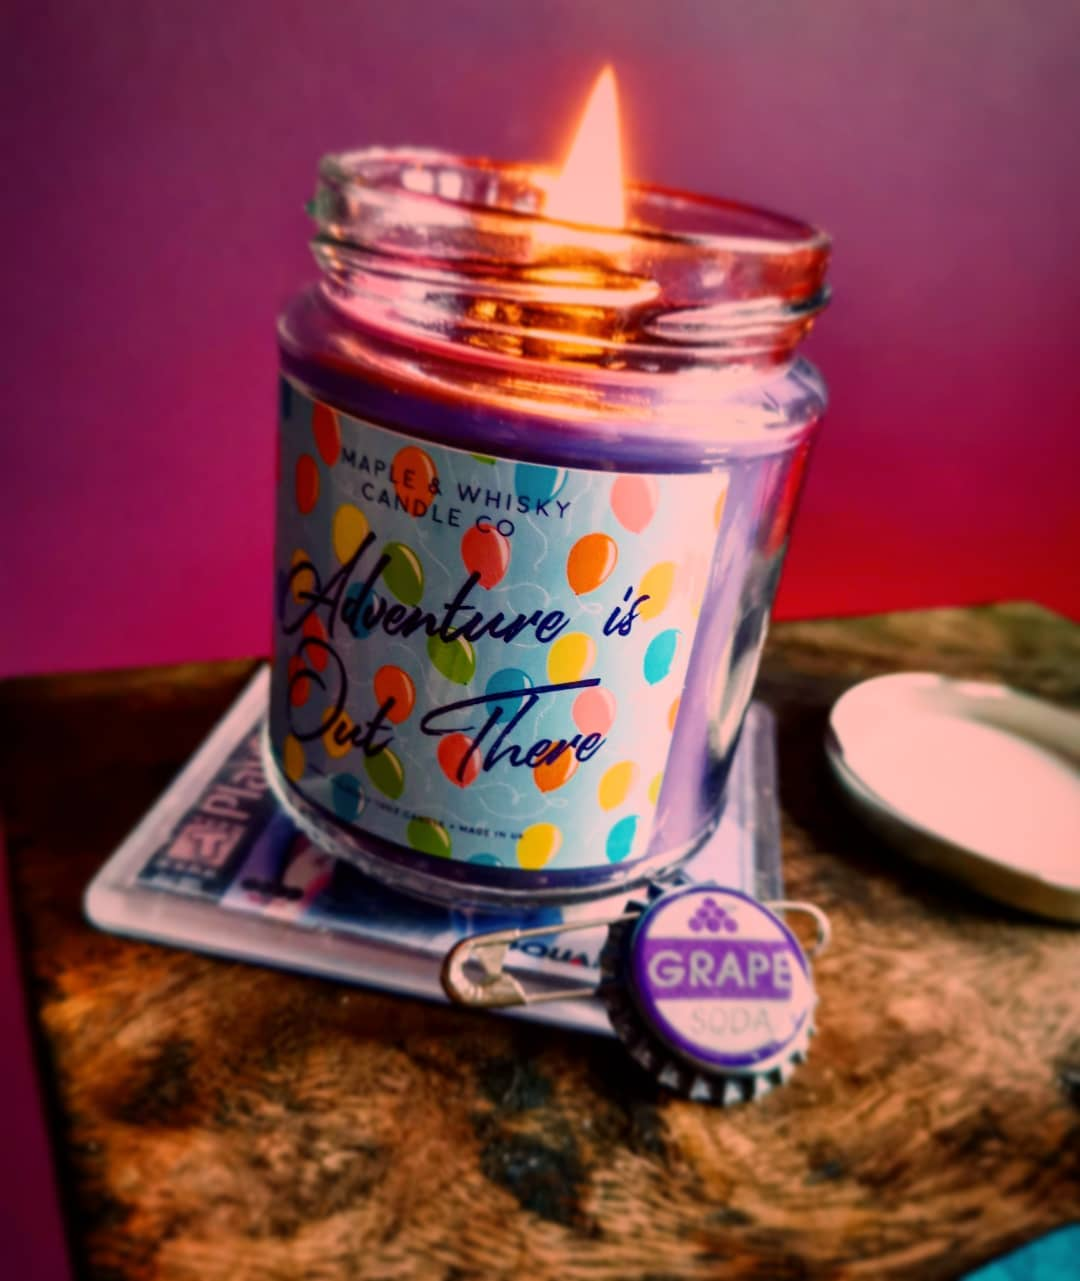 Adventure is Out There is just one of the many scents available from Maple & Whisky Candle Co